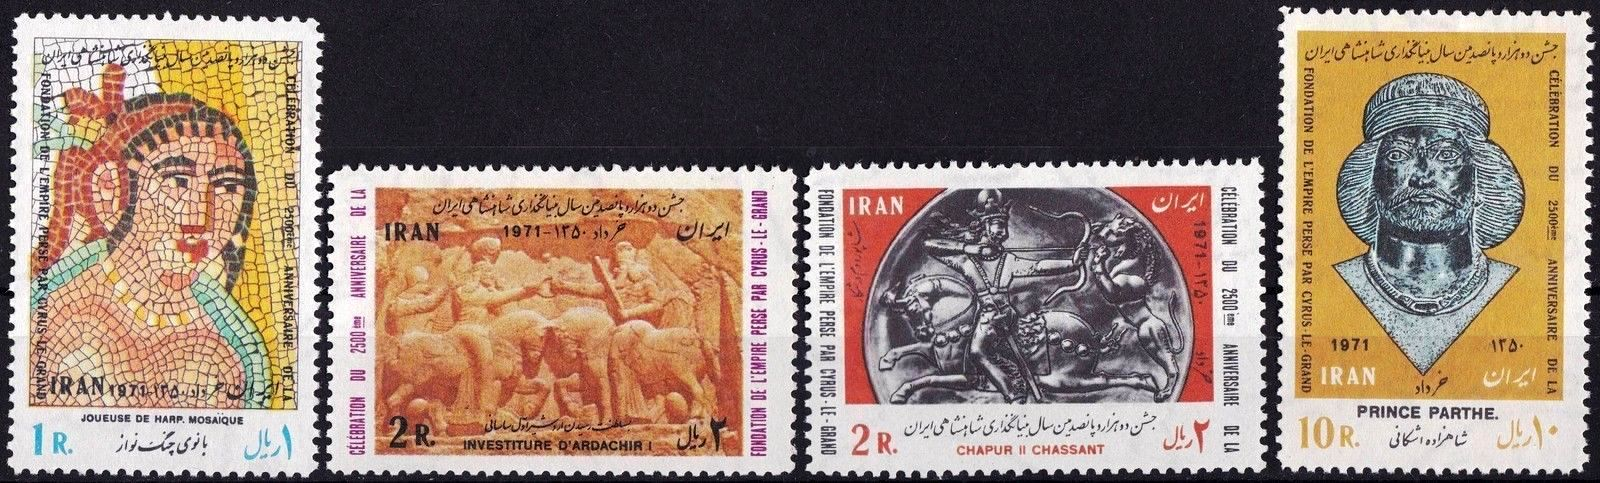 Iran 1971 Stamps 2500th Anniversary Of Persian Empire 06